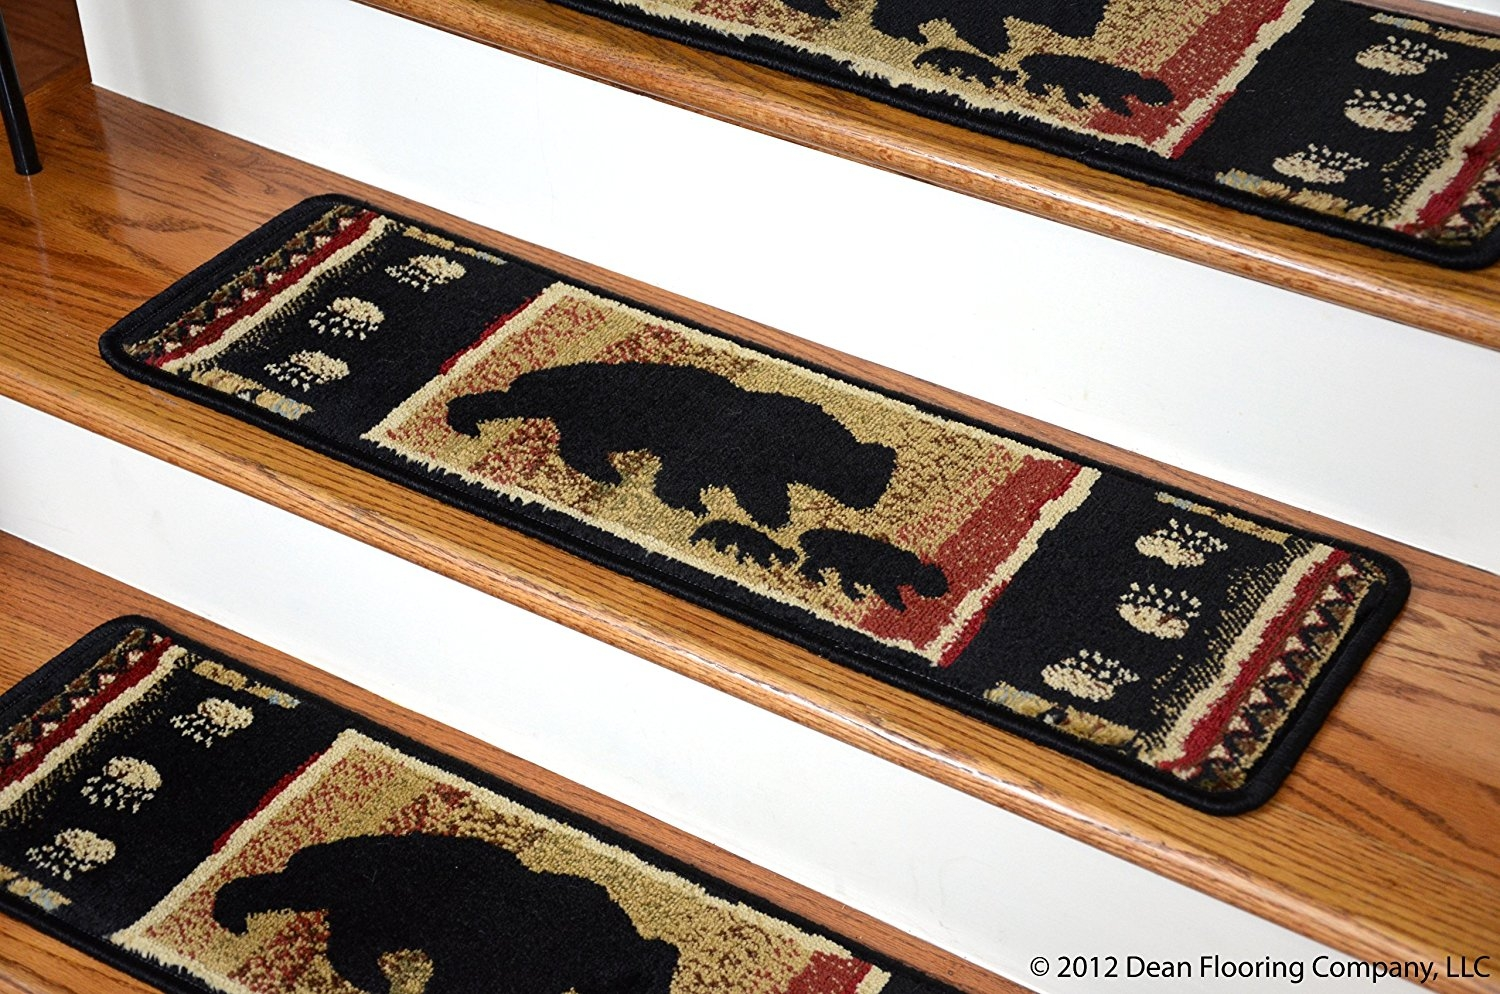 Dean Premium Carpet Stair Treads Black Bear Cabin 31 X 9 Set Intended For Set Of 13 Stair Tread Rugs (#5 of 20)